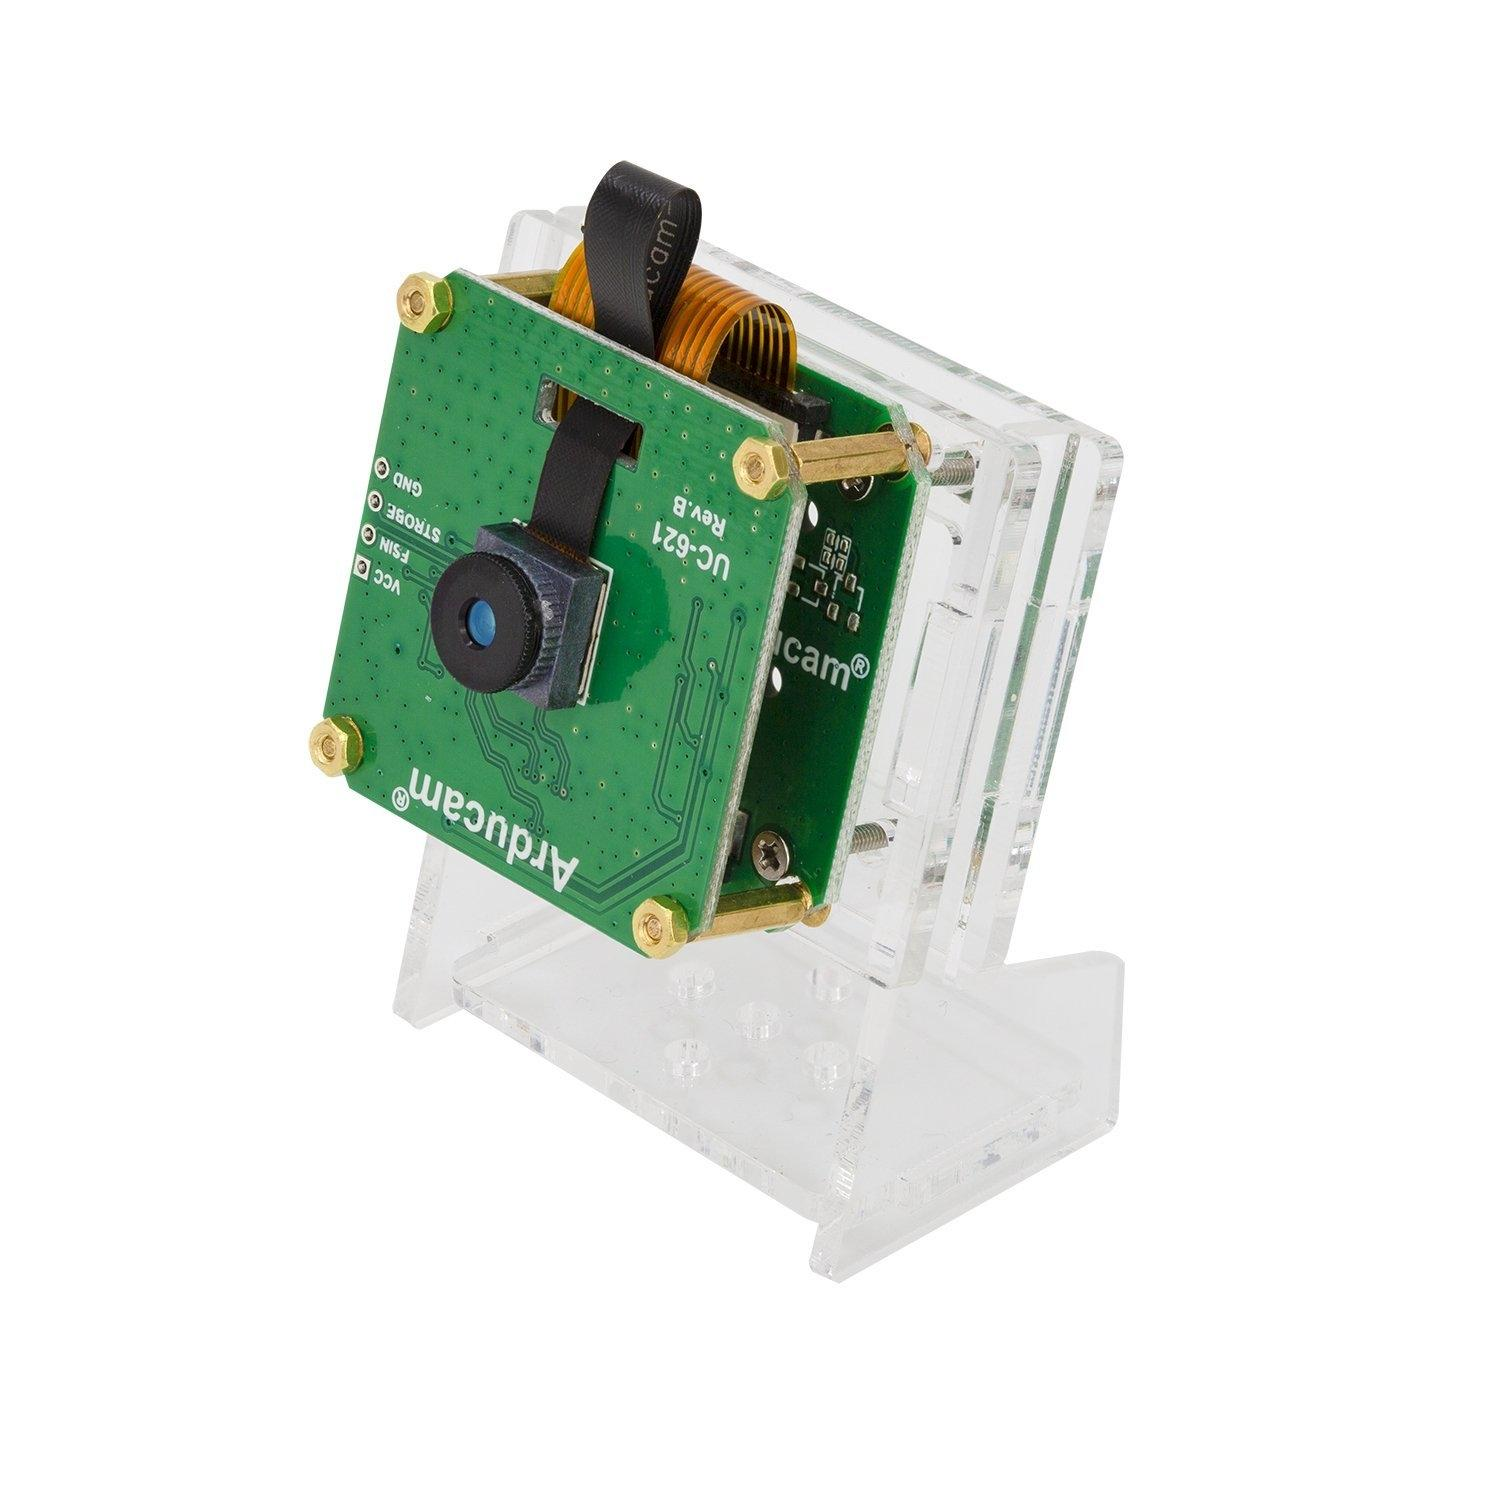 [Jetson Nano] Arducam 2MP OV2311 Global Shutter Mono Visible Light Camera Modules for Jetson Nano